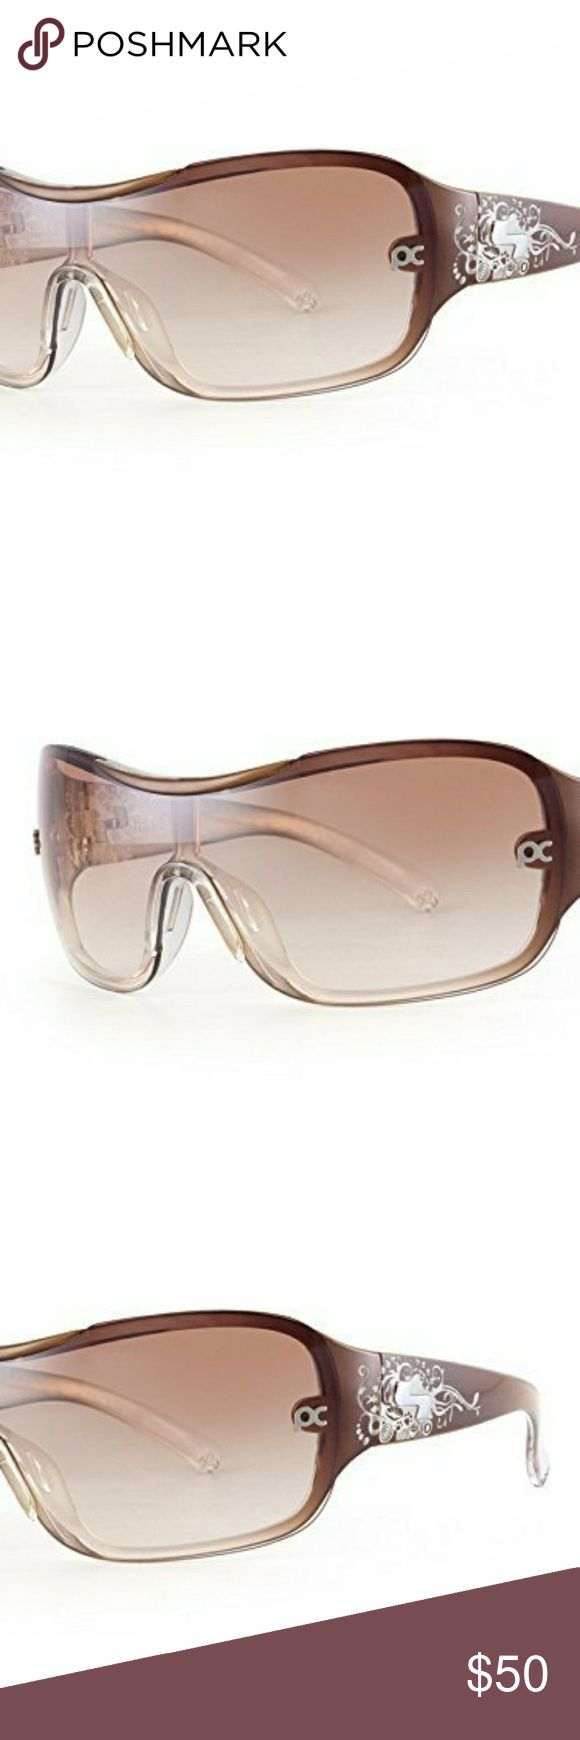 Sundog Paula Creamer Iconic golf sunglasses 493002 Brown gold fade, gradient brown lens, Polycarbonate 100% UVA/UVB protection  with Max flex Rilsan. Sells for $103 on eBay, $60 on Amazon  NWOT sundog Accessories Sunglasses